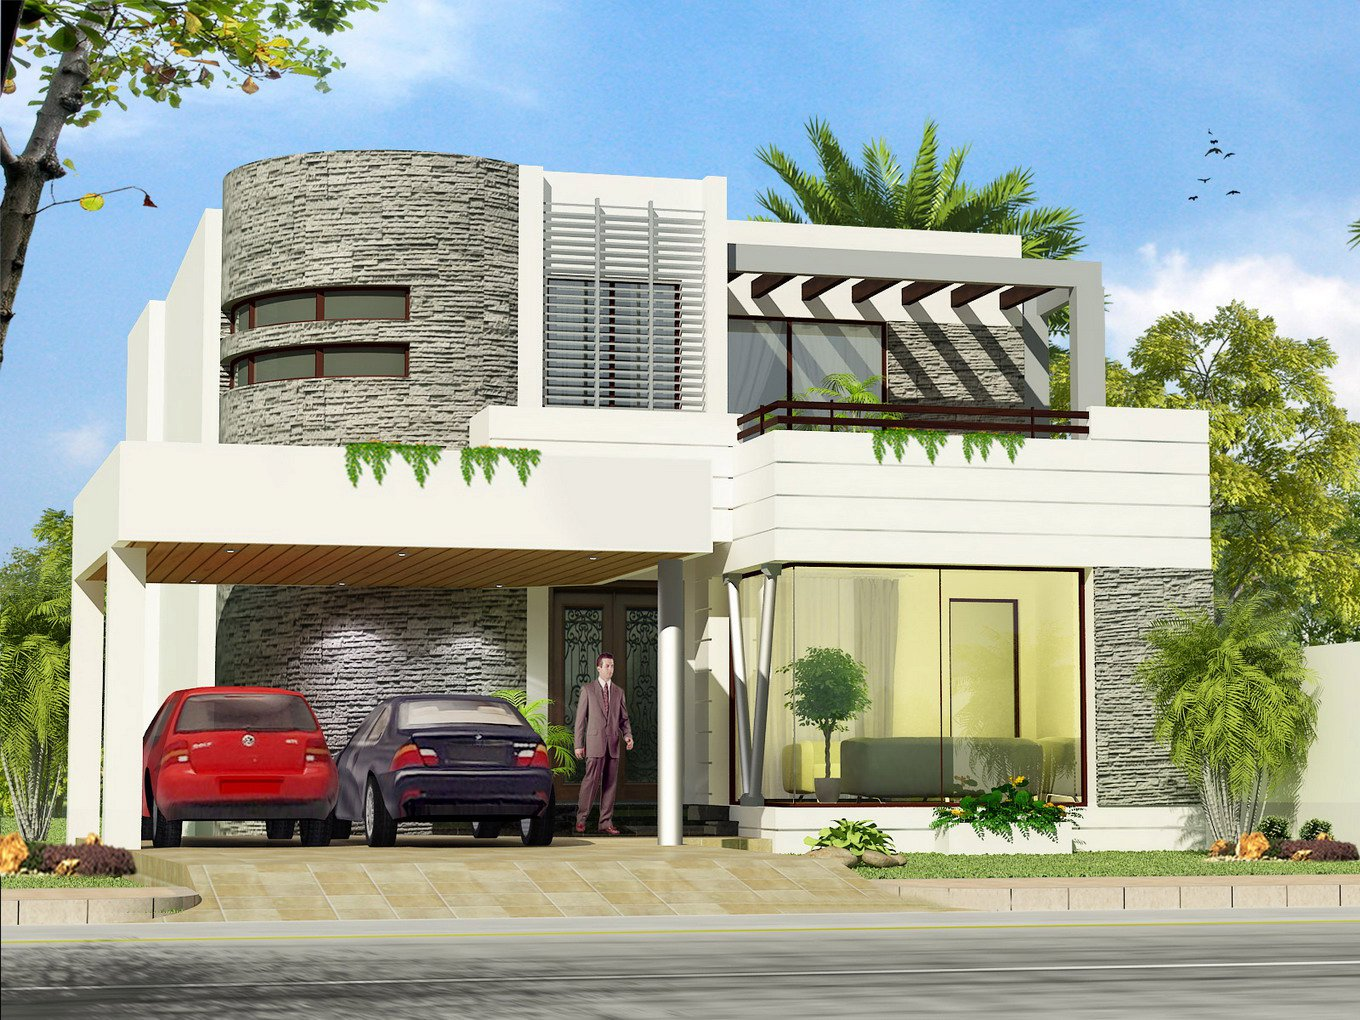 New home designs latest modern homes beautiful latest for House outside design ideas